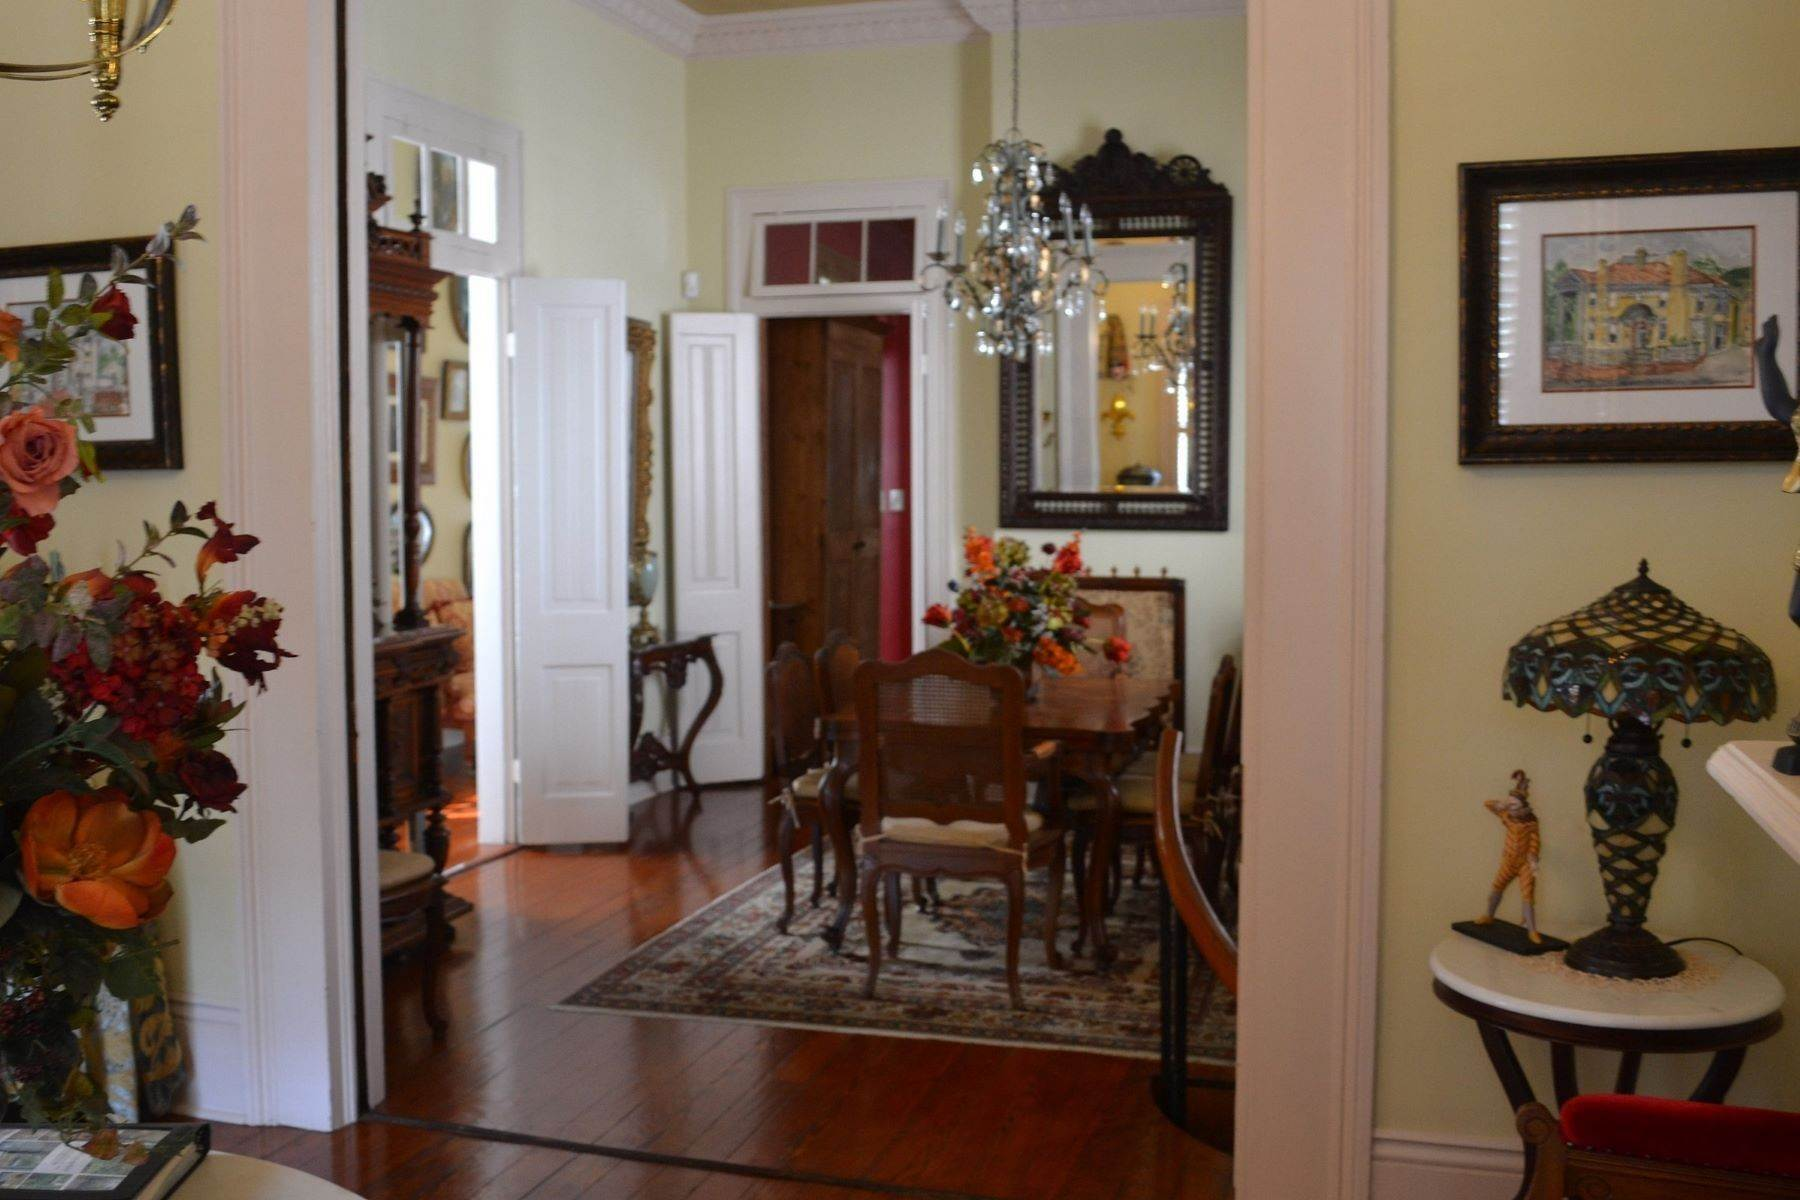 5. Single Family Homes for Sale at 729 Kerlerec Street 729 Kerlerec St New Orleans, Louisiana 70116 United States